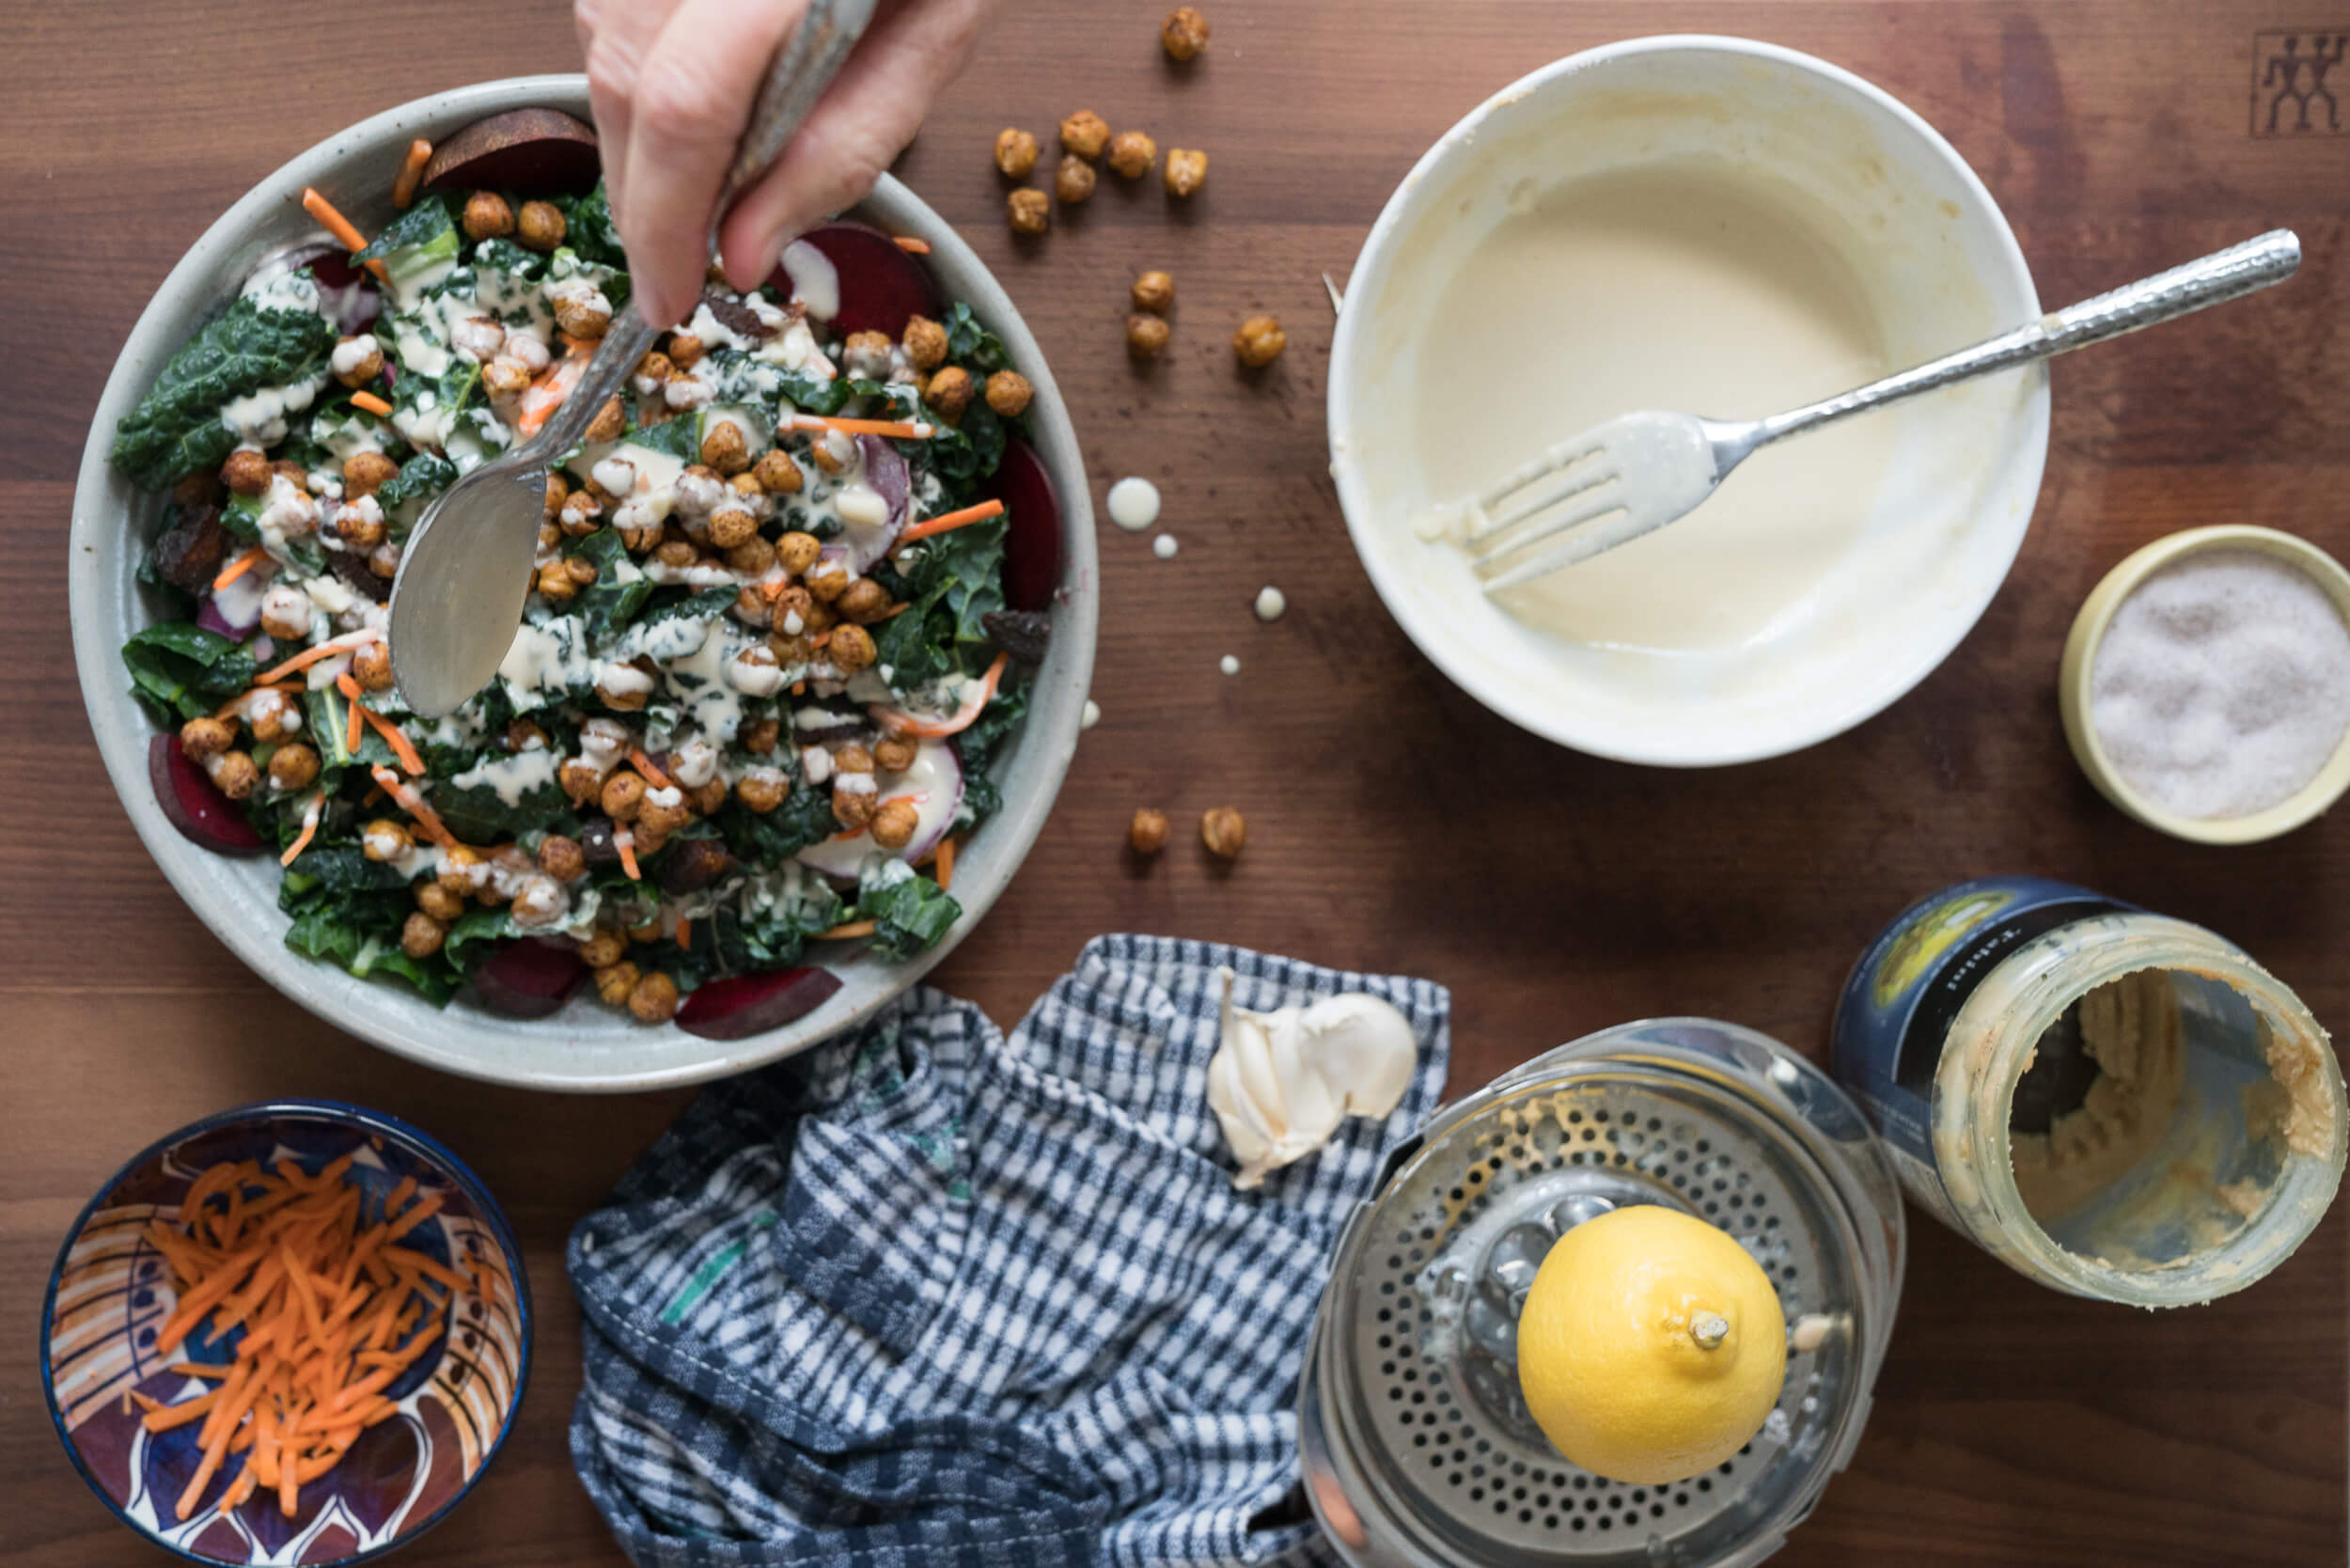 Roasted Chickpea and Kale Salad being dressed